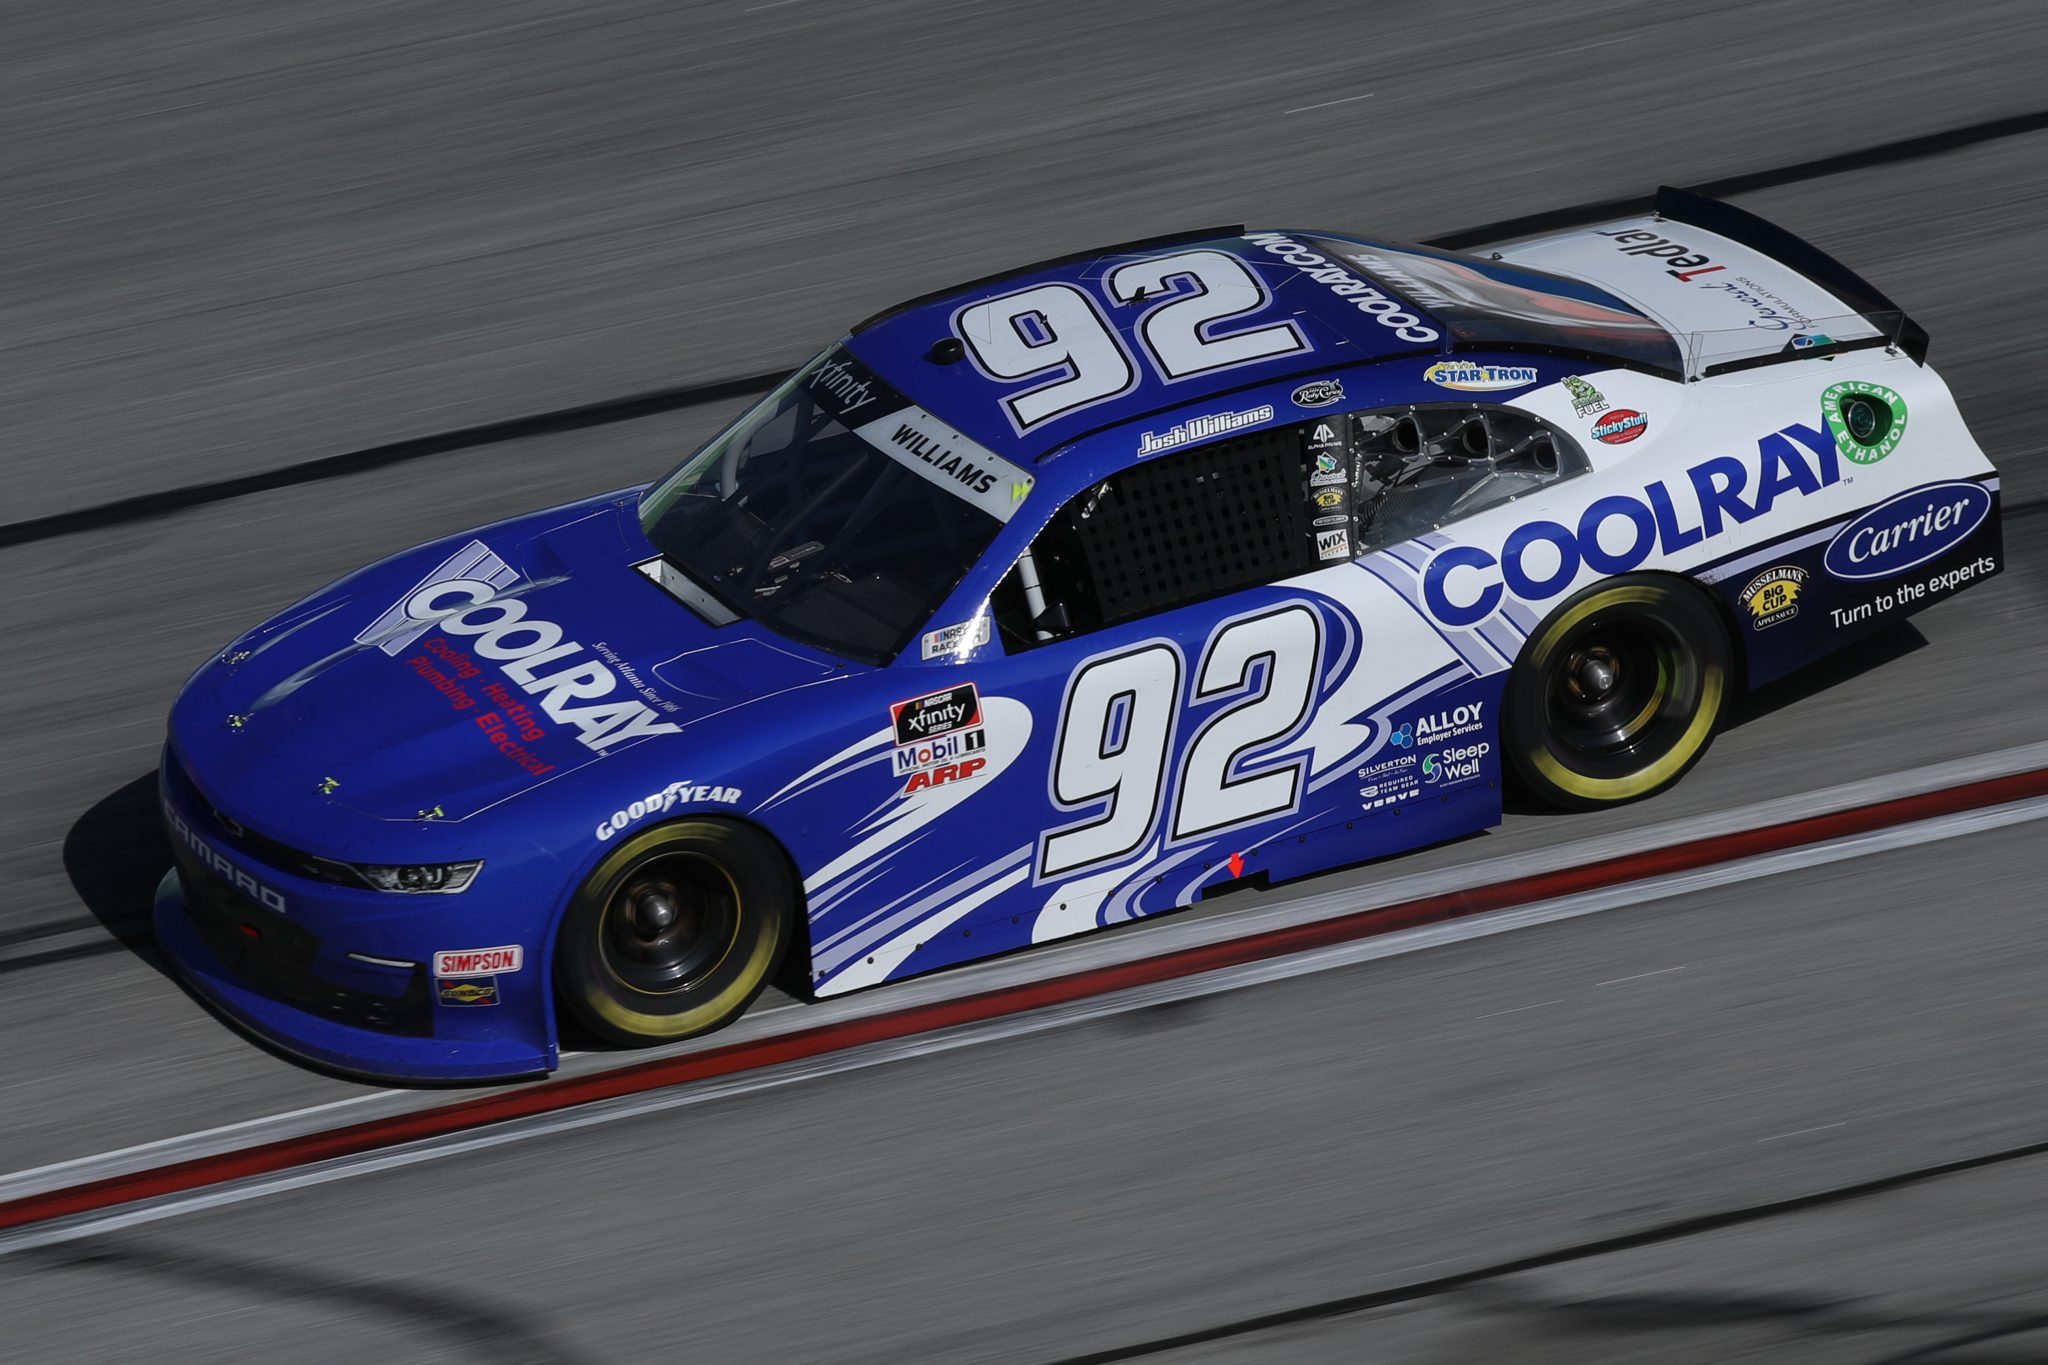 HAMPTON, GEORGIA - MARCH 20: Josh Williams, driver of the #92 Coolray Heating & AC Chevrolet, drives during the NASCAR Xfinity Series EchoPark 250 at Atlanta Motor Speedway on March 20, 2021 in Hampton, Georgia. (Photo by Sean Gardner/Getty Images) | Getty Images